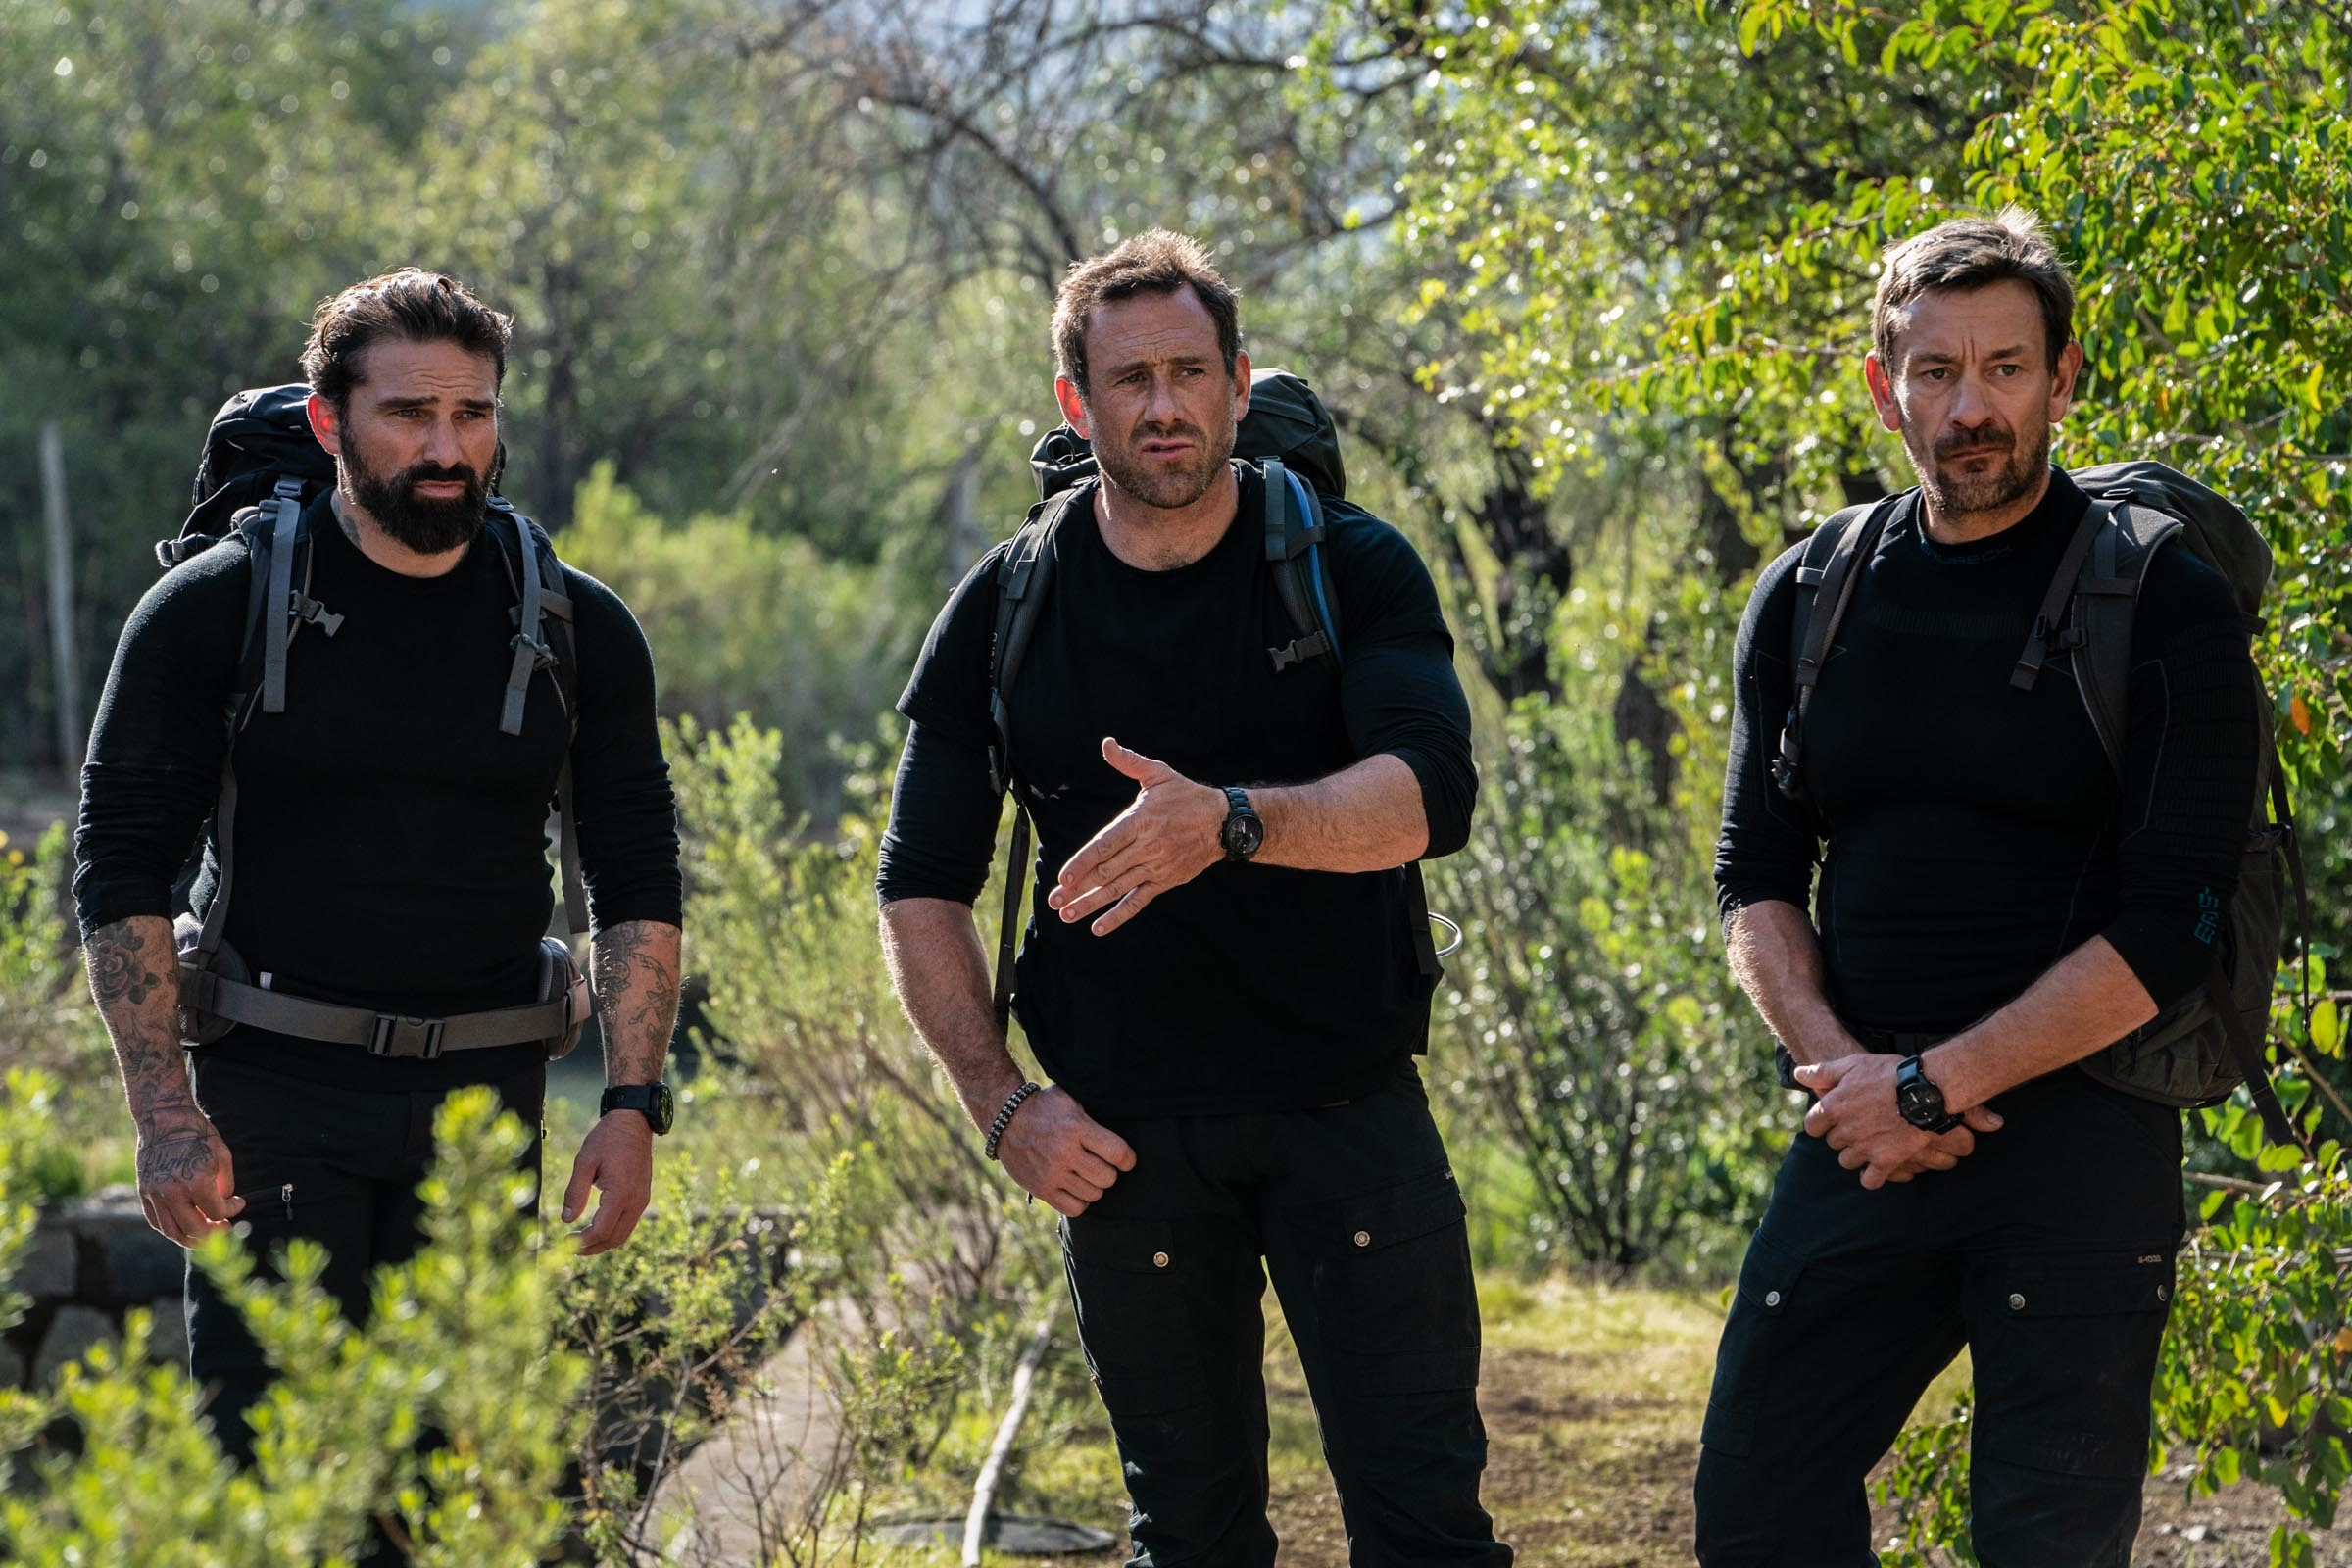 Chief Instructor Ant Middleton and DS Jason Fox & Ollie Ollerton at the Animas Hills Log Pools after the uphill race  Episode 2  Minnow Films / Channel 4